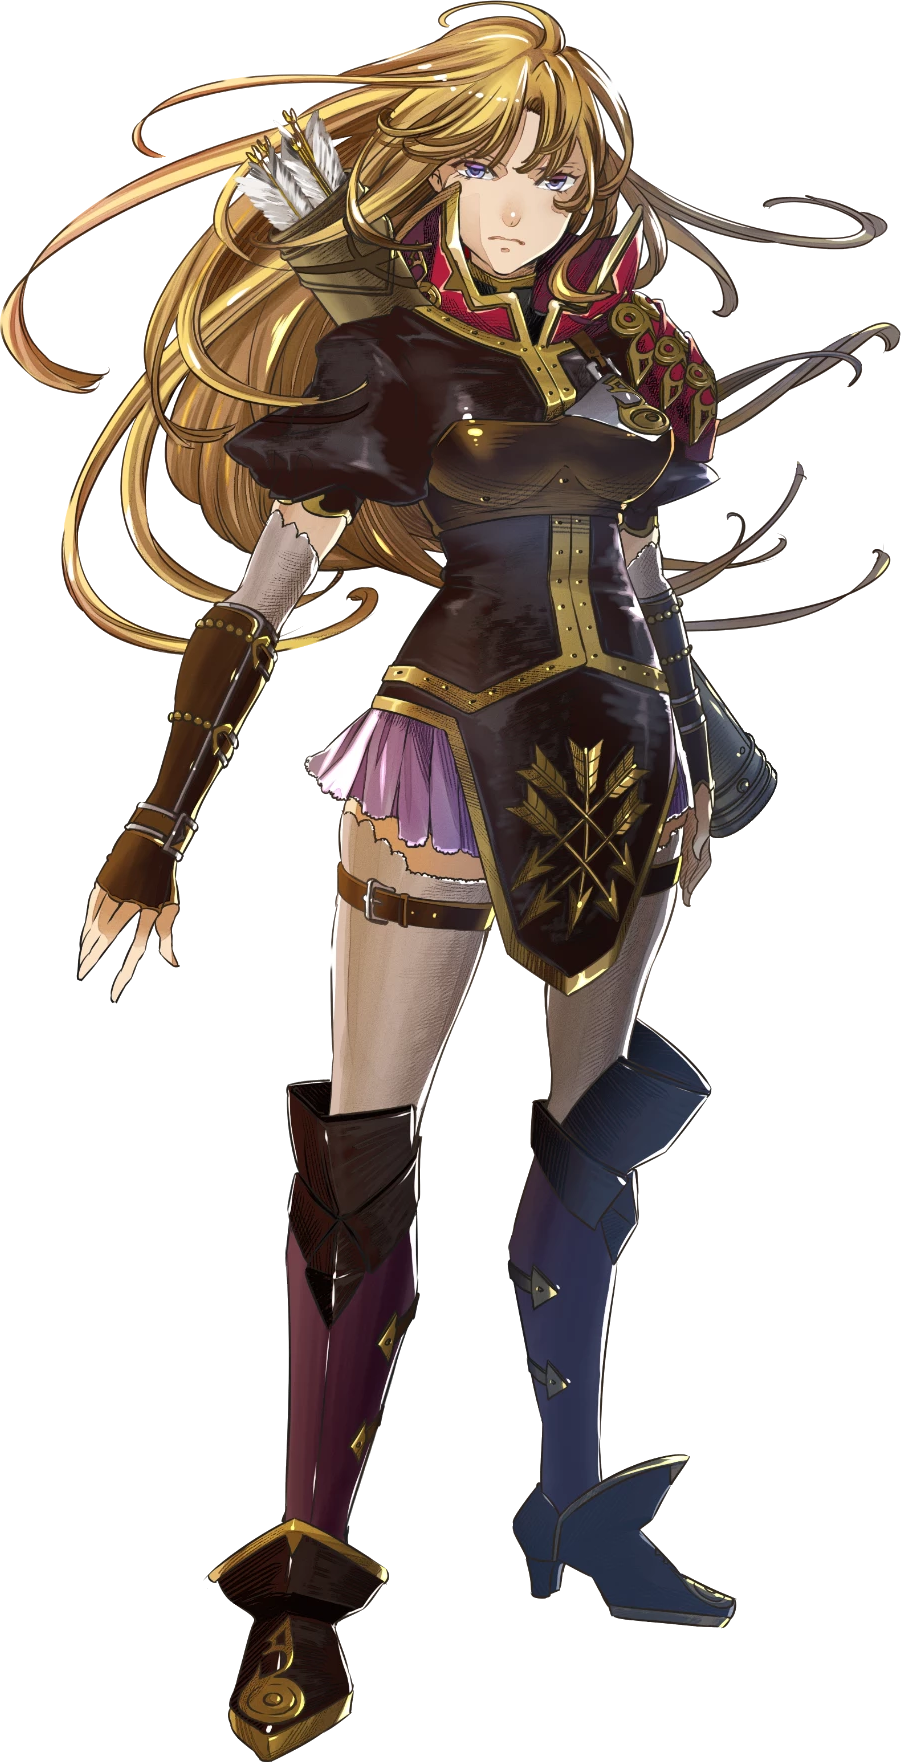 Clarisse Fire Emblem Wiki Fandom Powered By Wikia